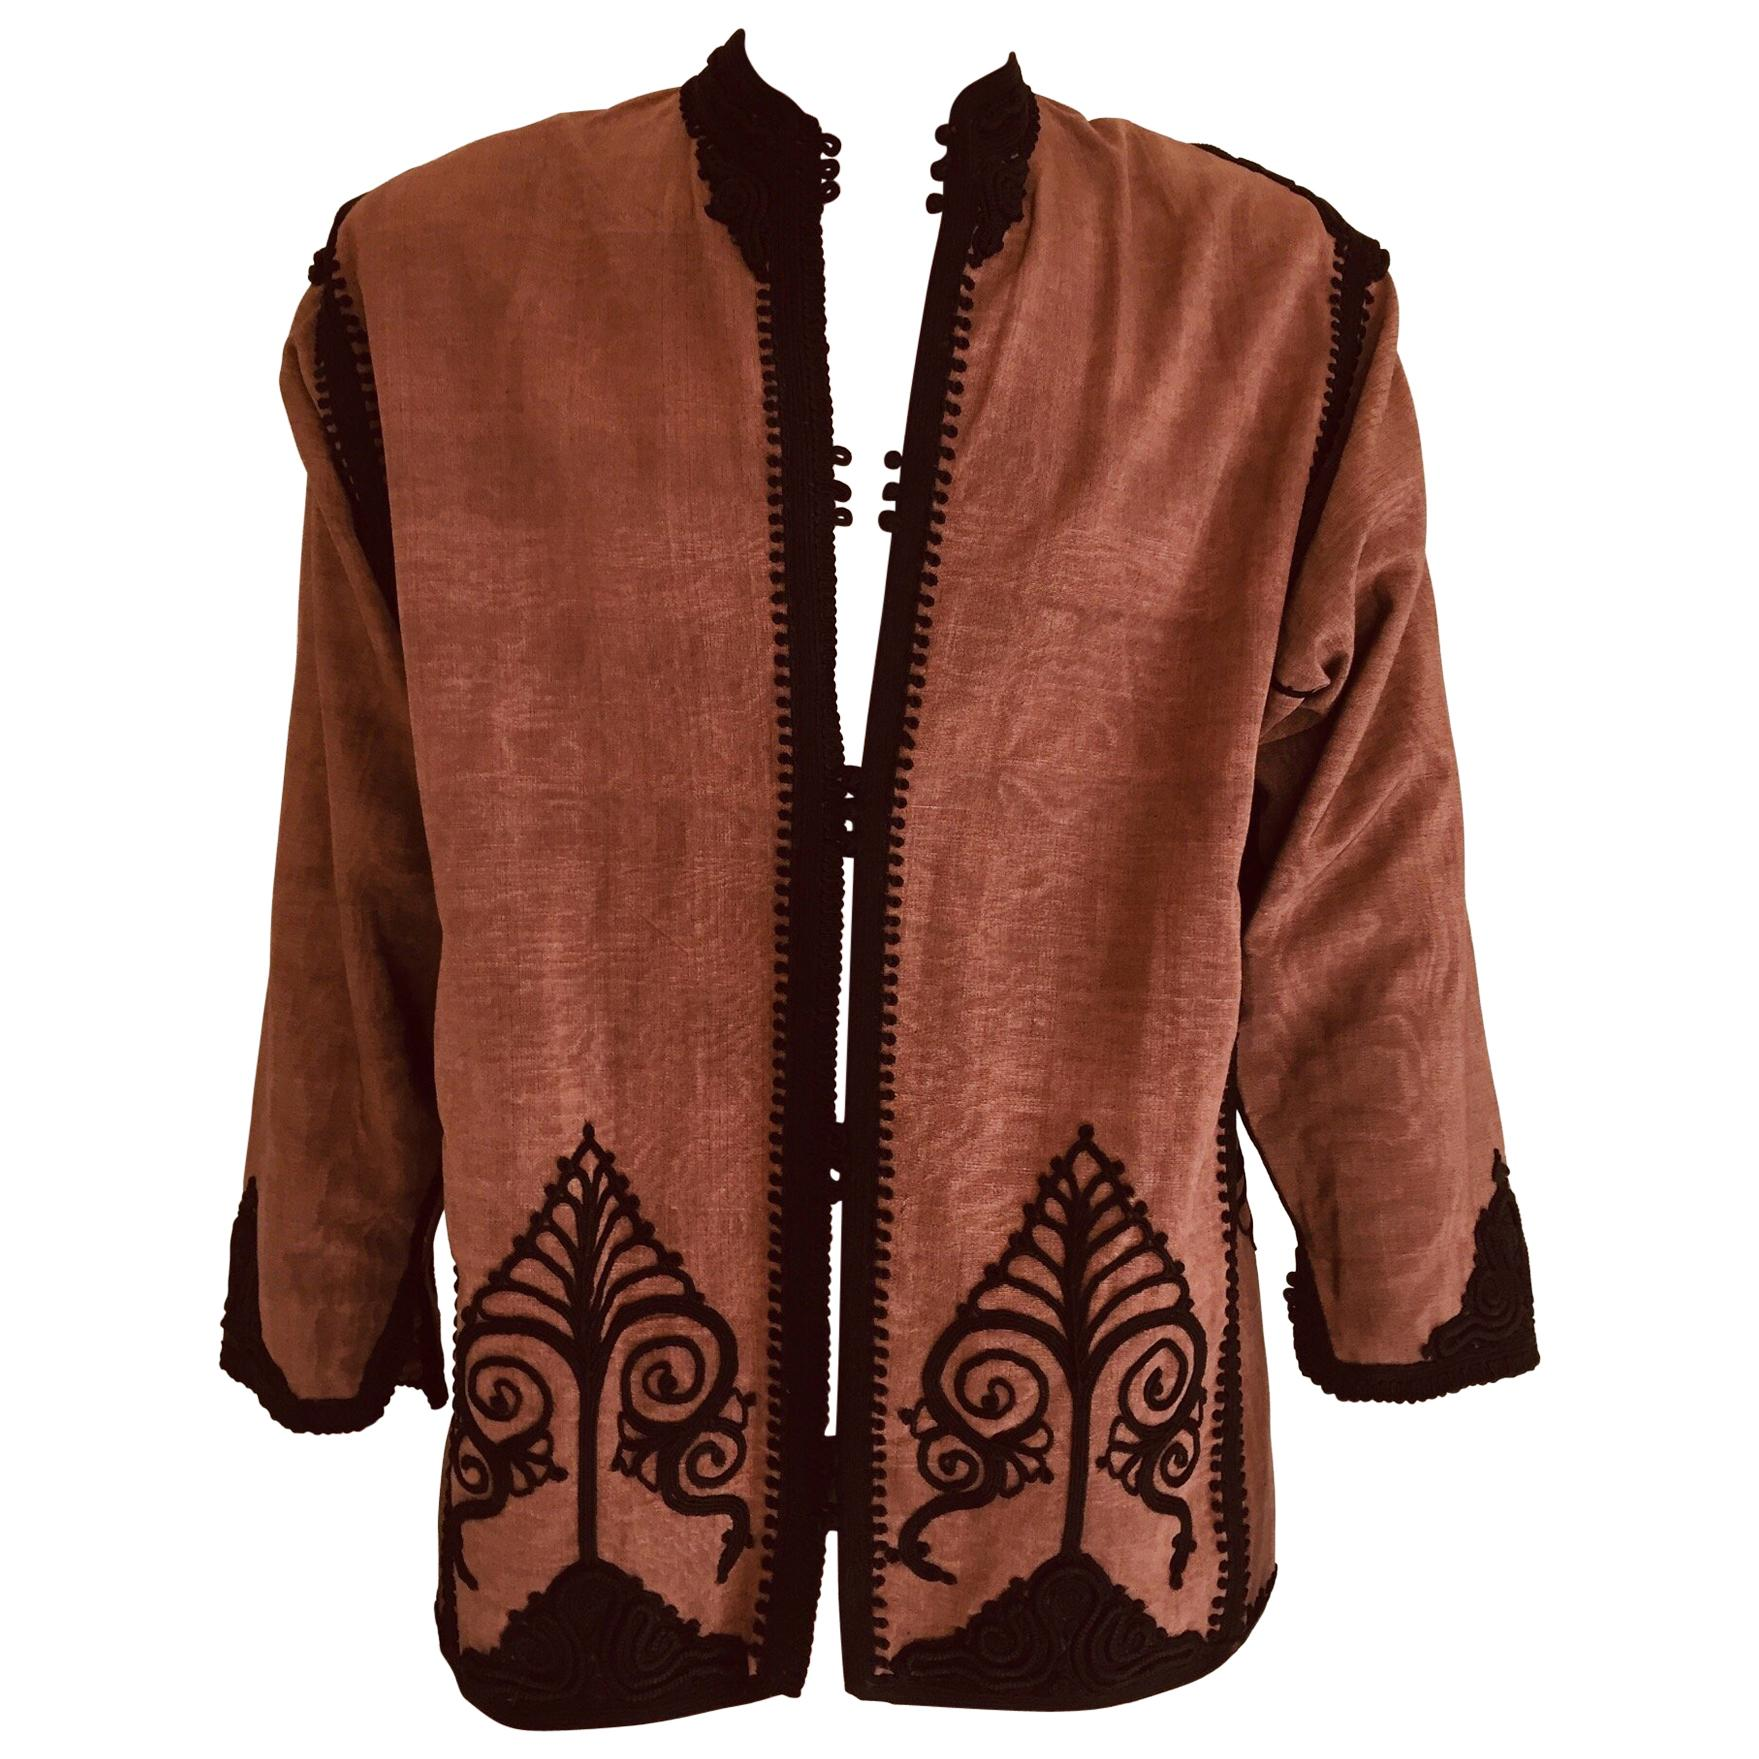 Moroccan Short Vest Brown and Black Embroideries Caftan